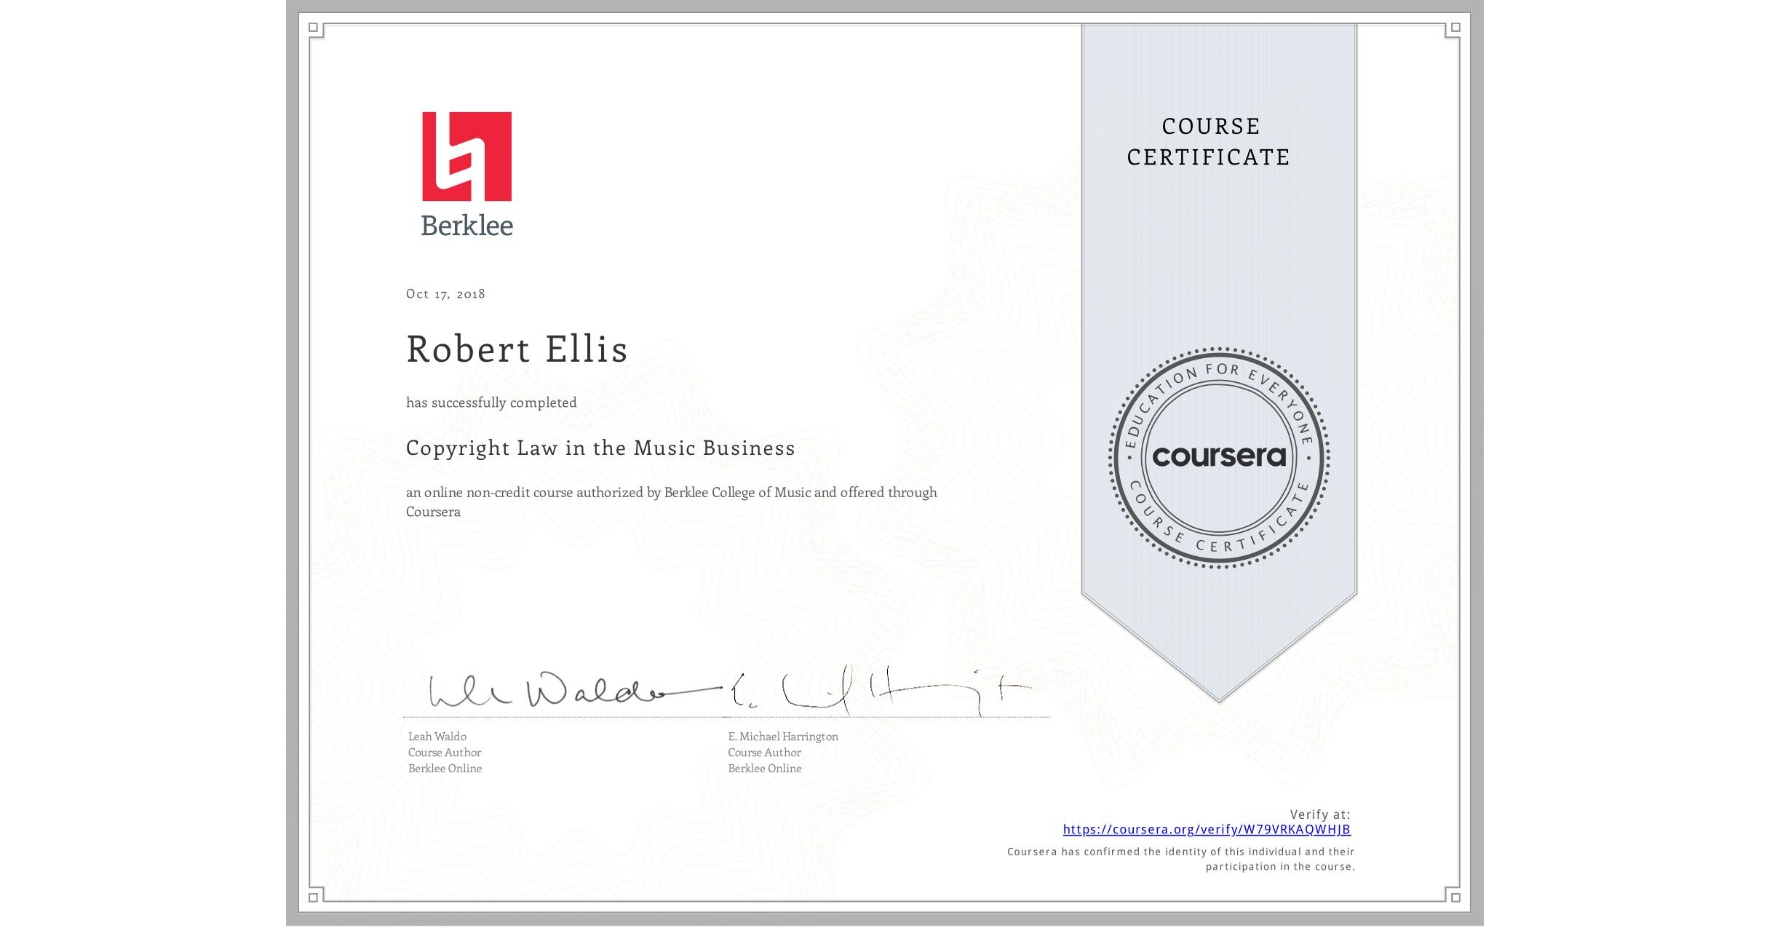 View certificate for Robert Ellis, Copyright Law in the Music Business, an online non-credit course authorized by Berklee College of Music and offered through Coursera